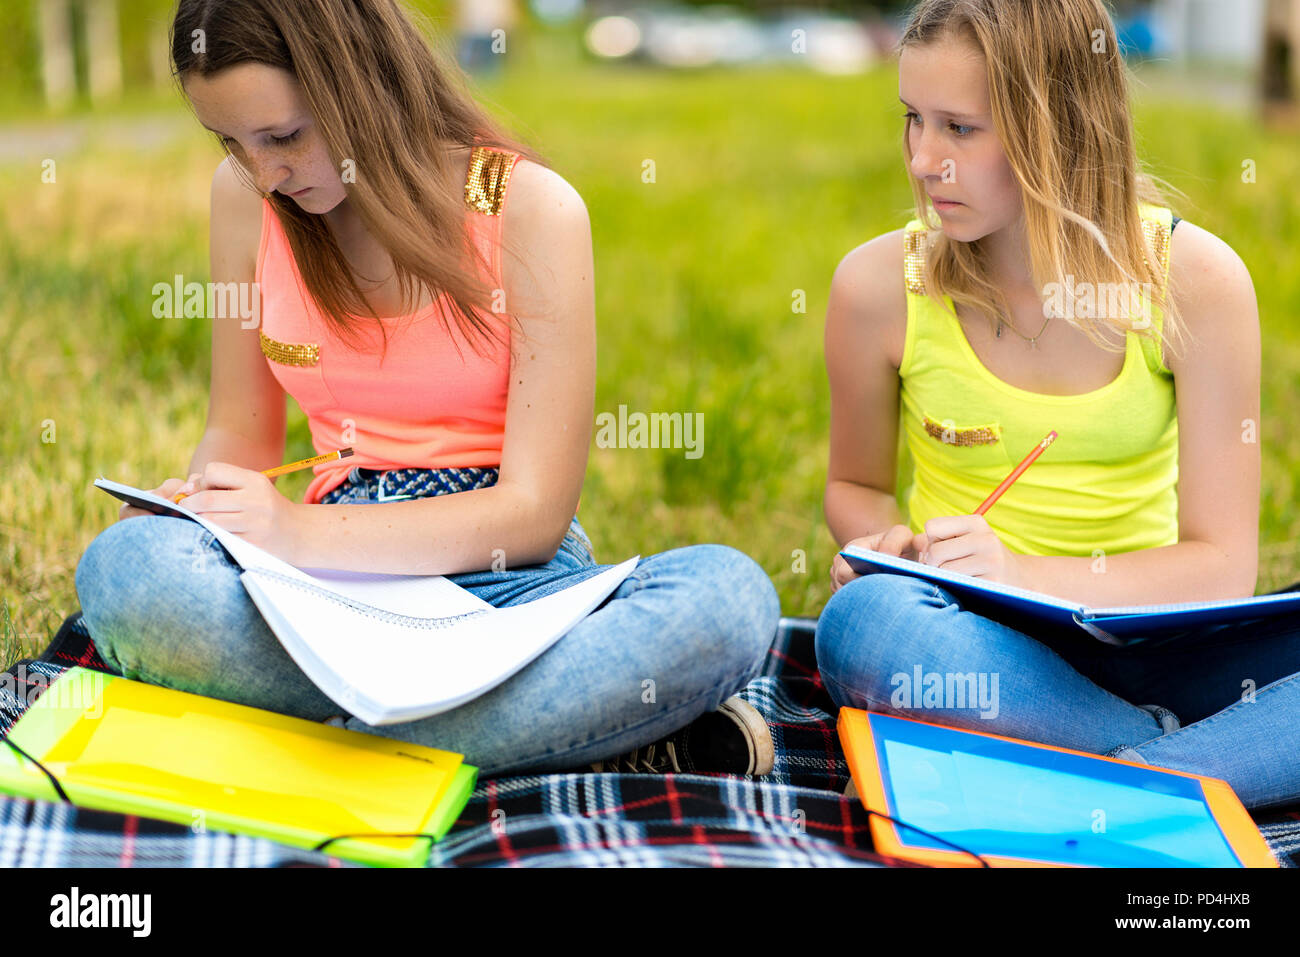 Do they give homework at summer school